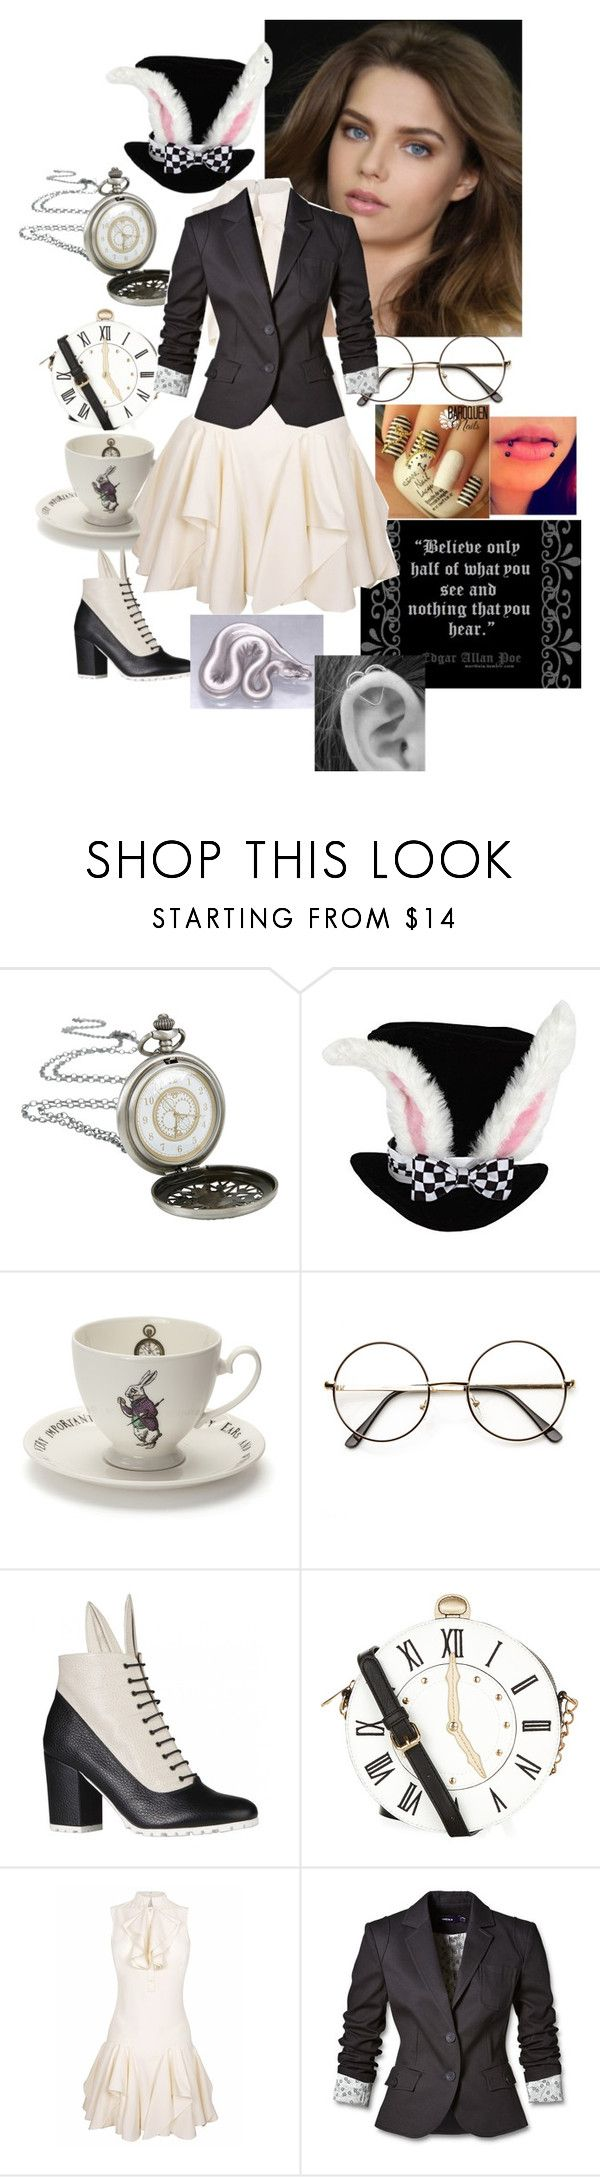 """""""Alexis Outfit #4"""" by jakela778 ❤ liked on Polyvore featuring Disney, Mrs Moore, ZeroUV, Minna Parikka, Accessorize and Mexx"""